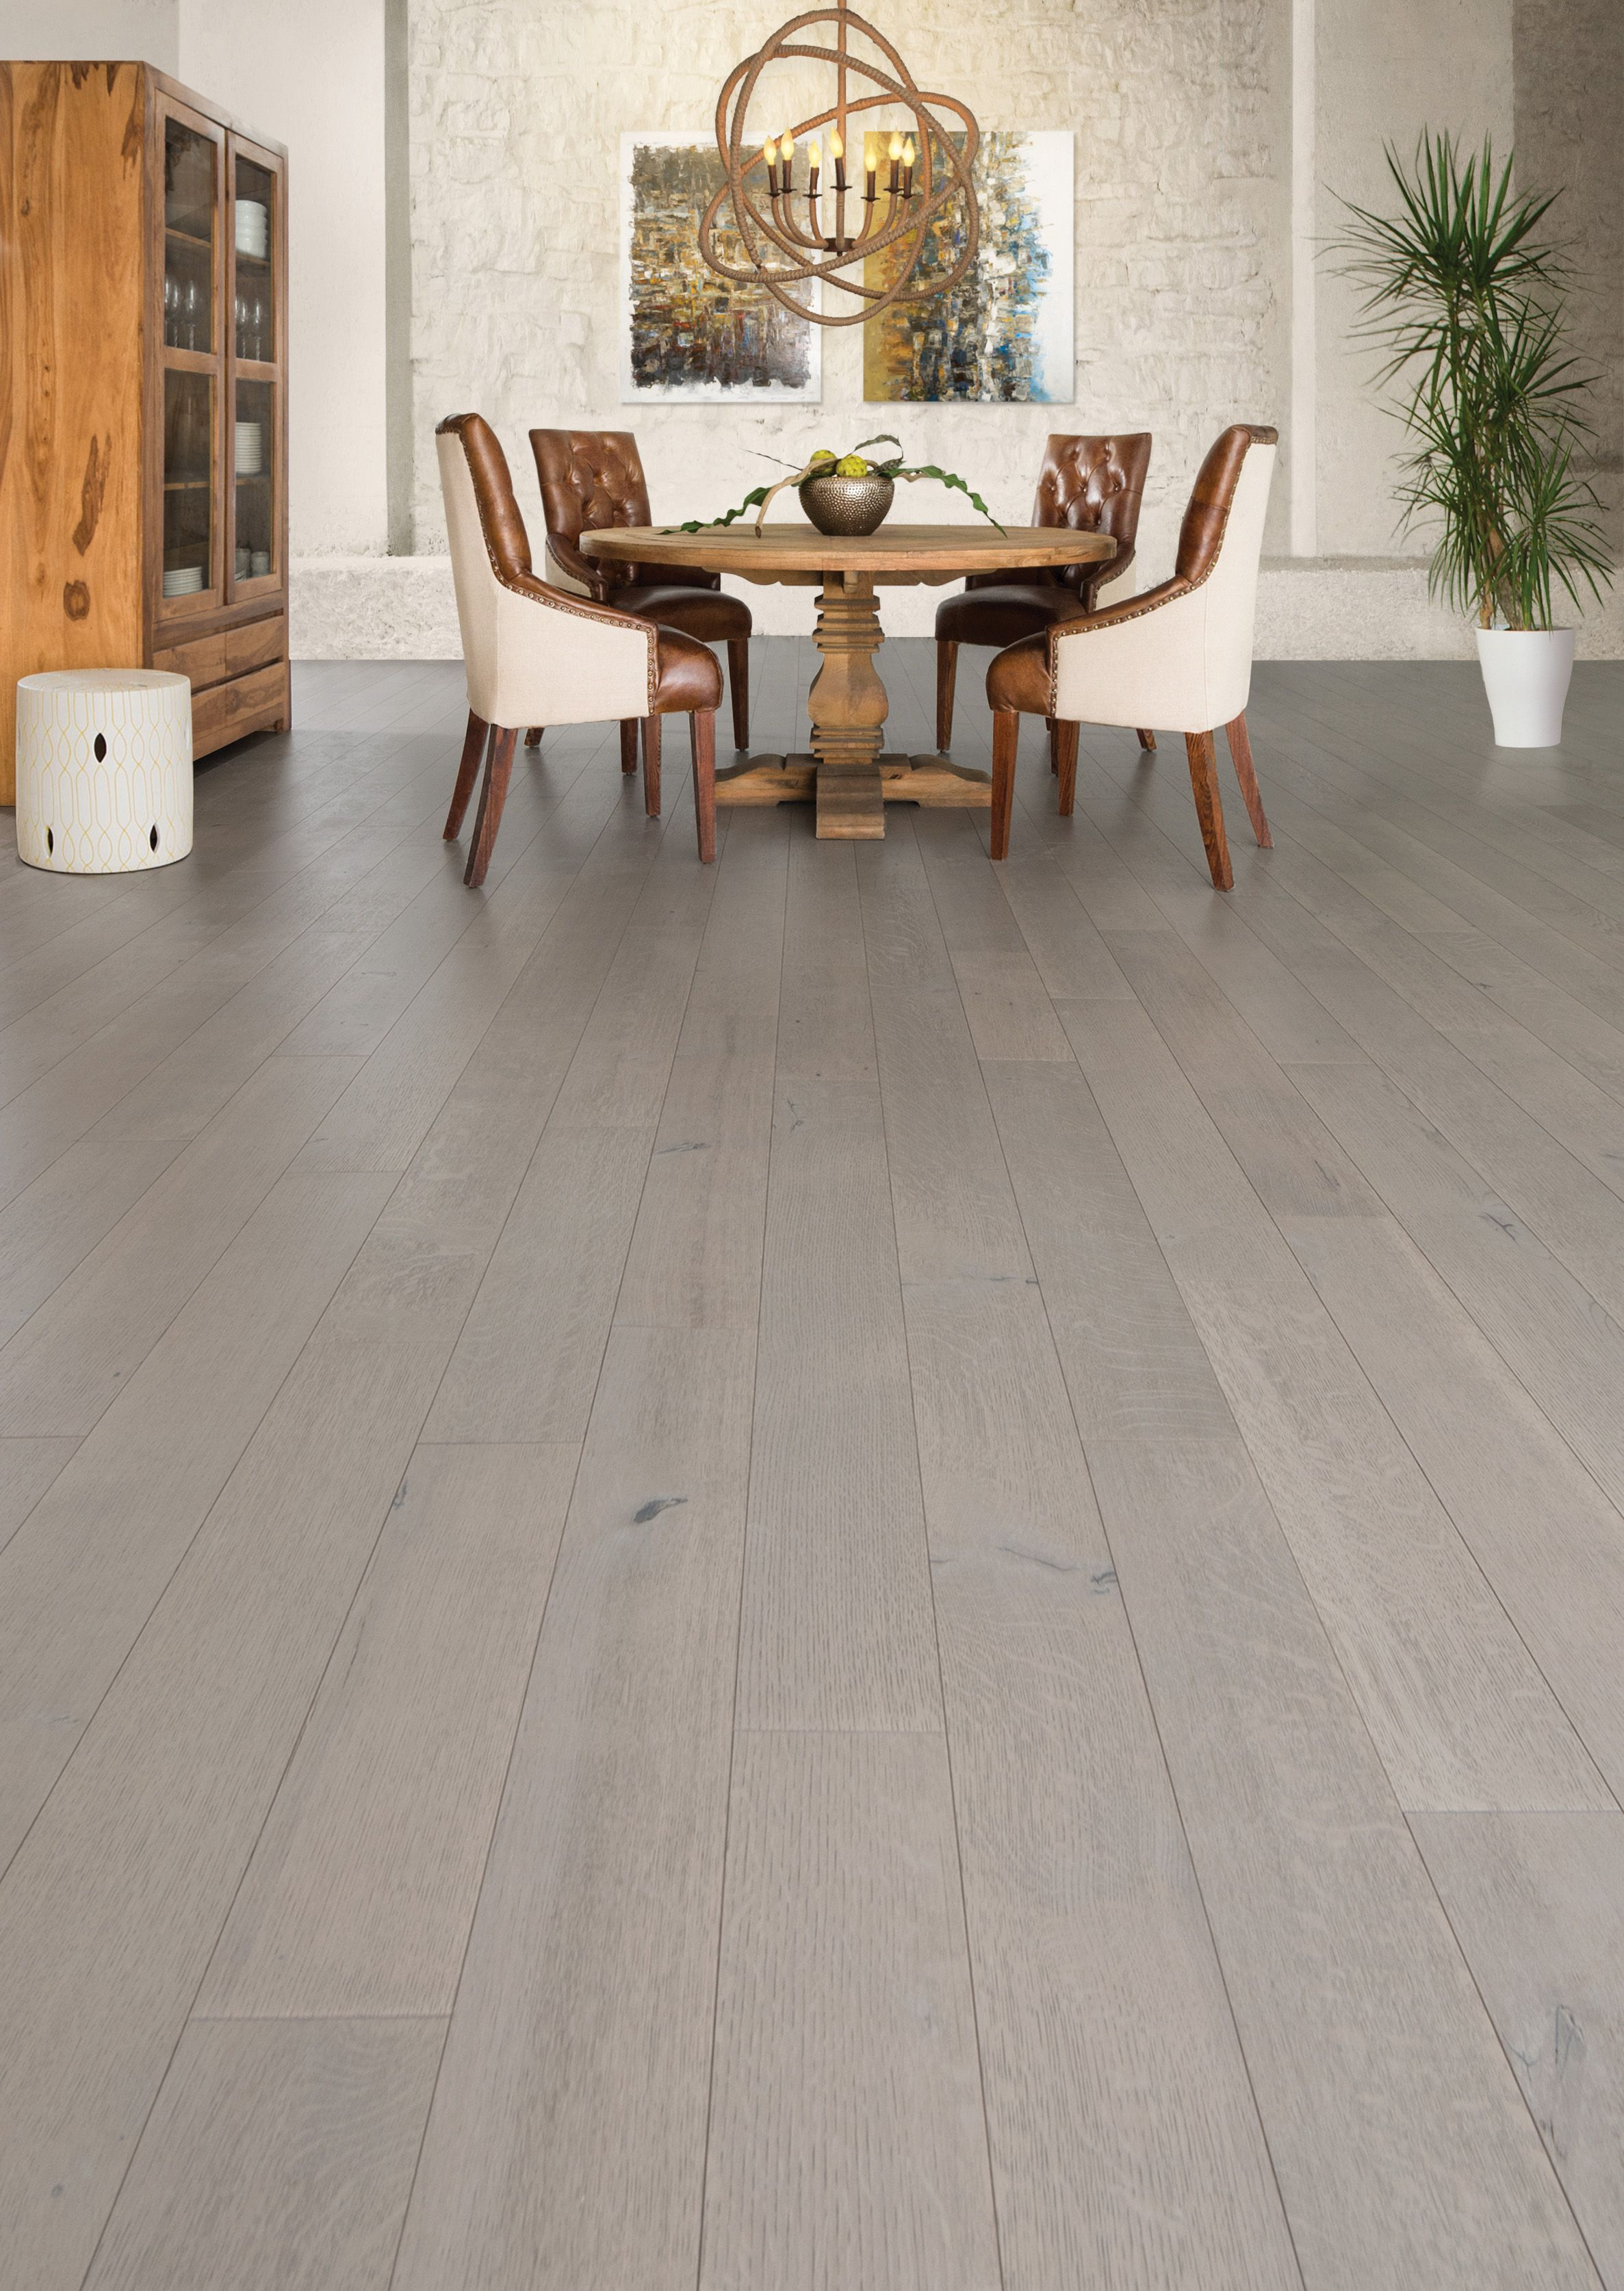 Mirage Floors, The Worldu0027s Finest And Best Hardwood Floors. Handcrafted  White Oak